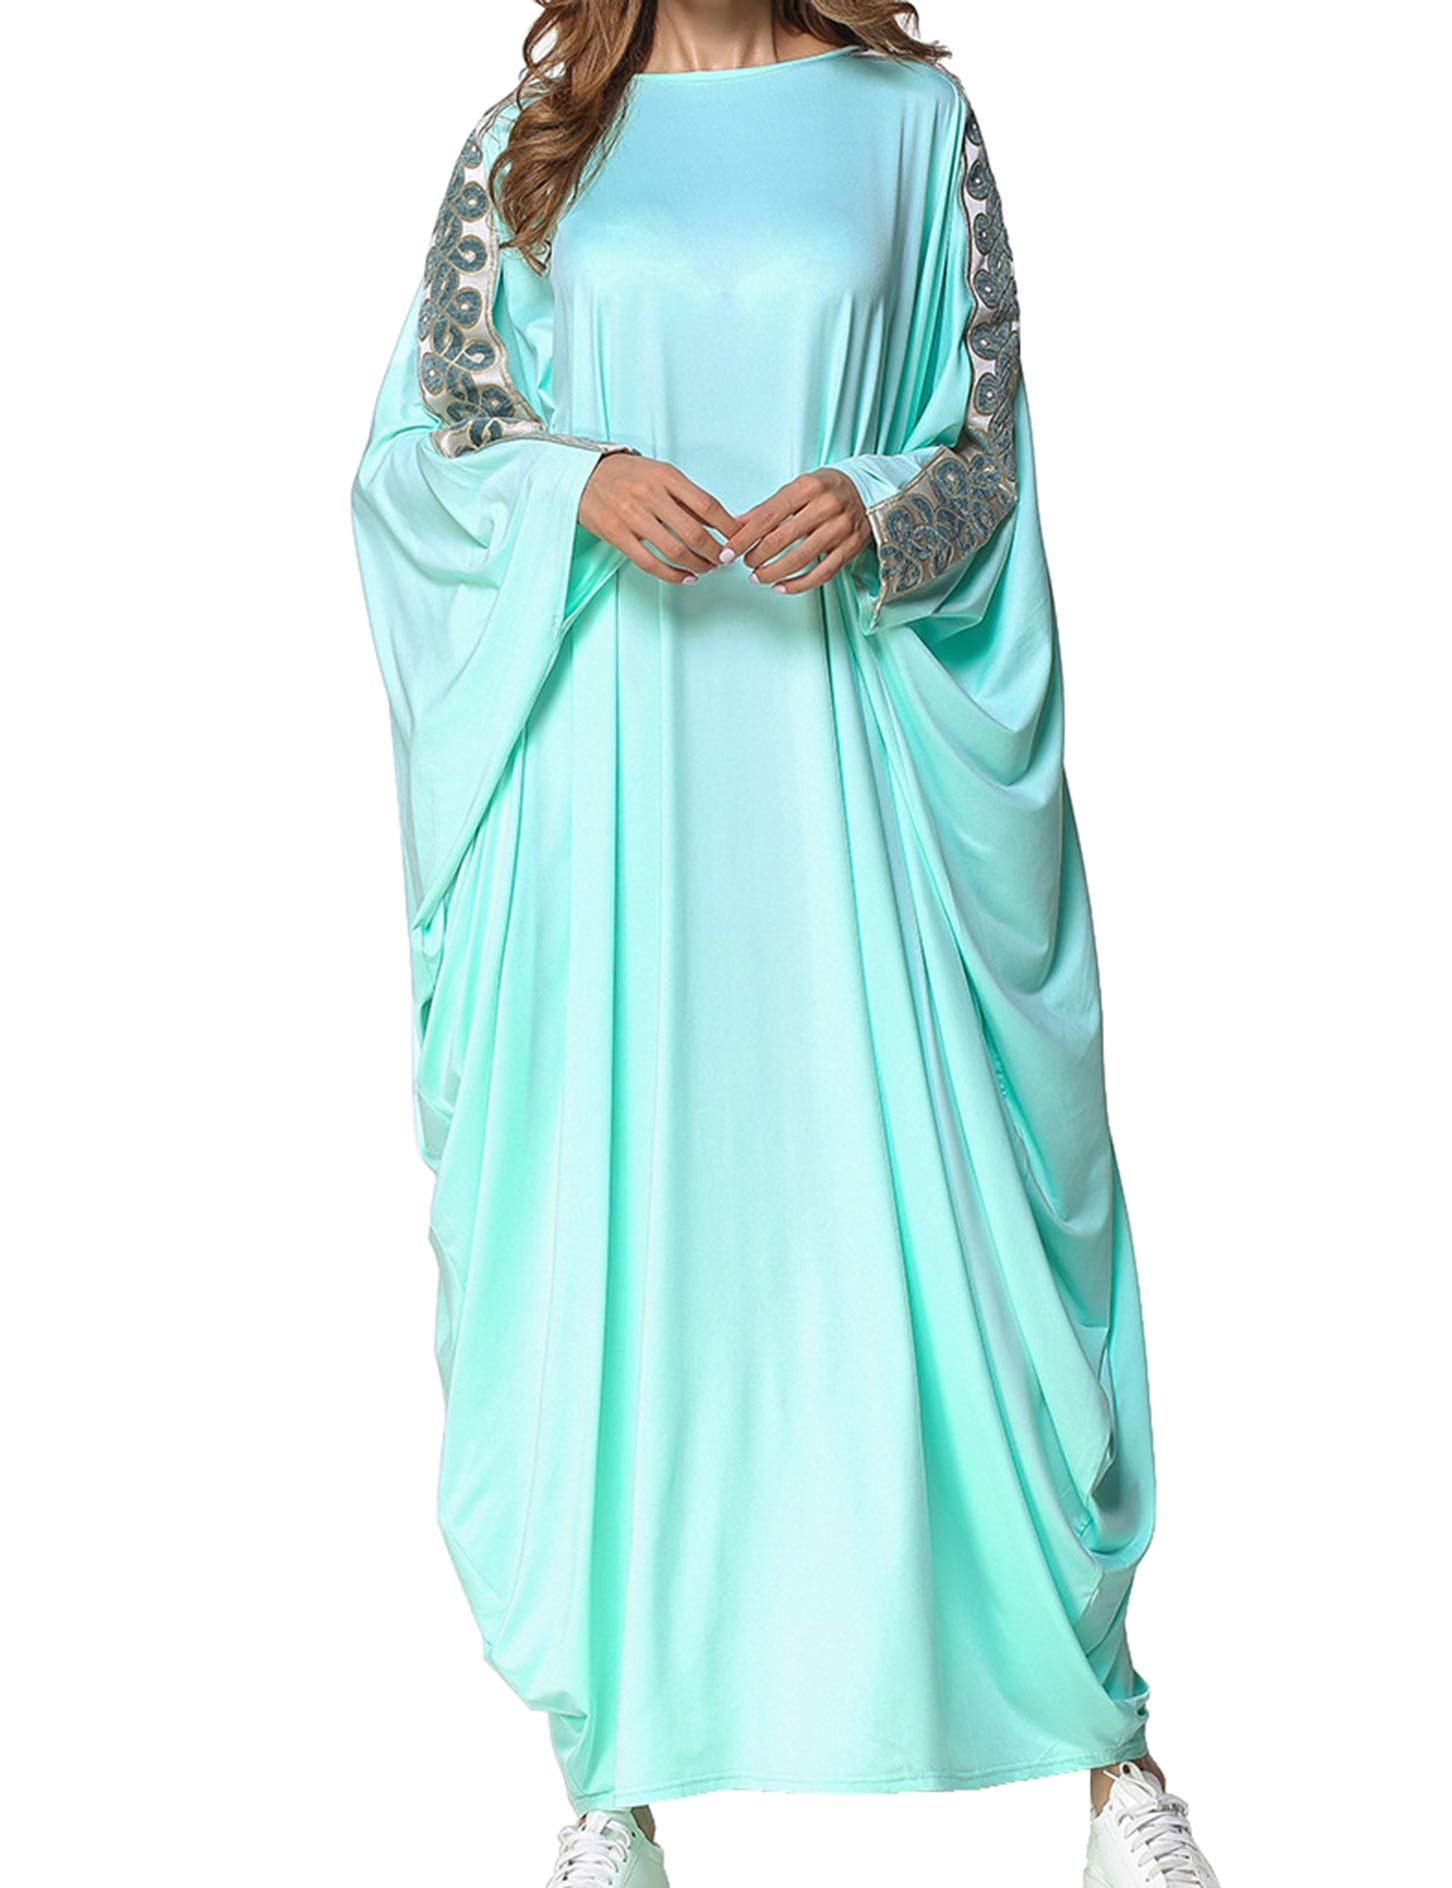 Qianliniuinc Women Muslim Islamic Long Dress-Bat Sleeve Plus Size Abaya Kaftan Clothing Moroccan Dubai Gown Blue